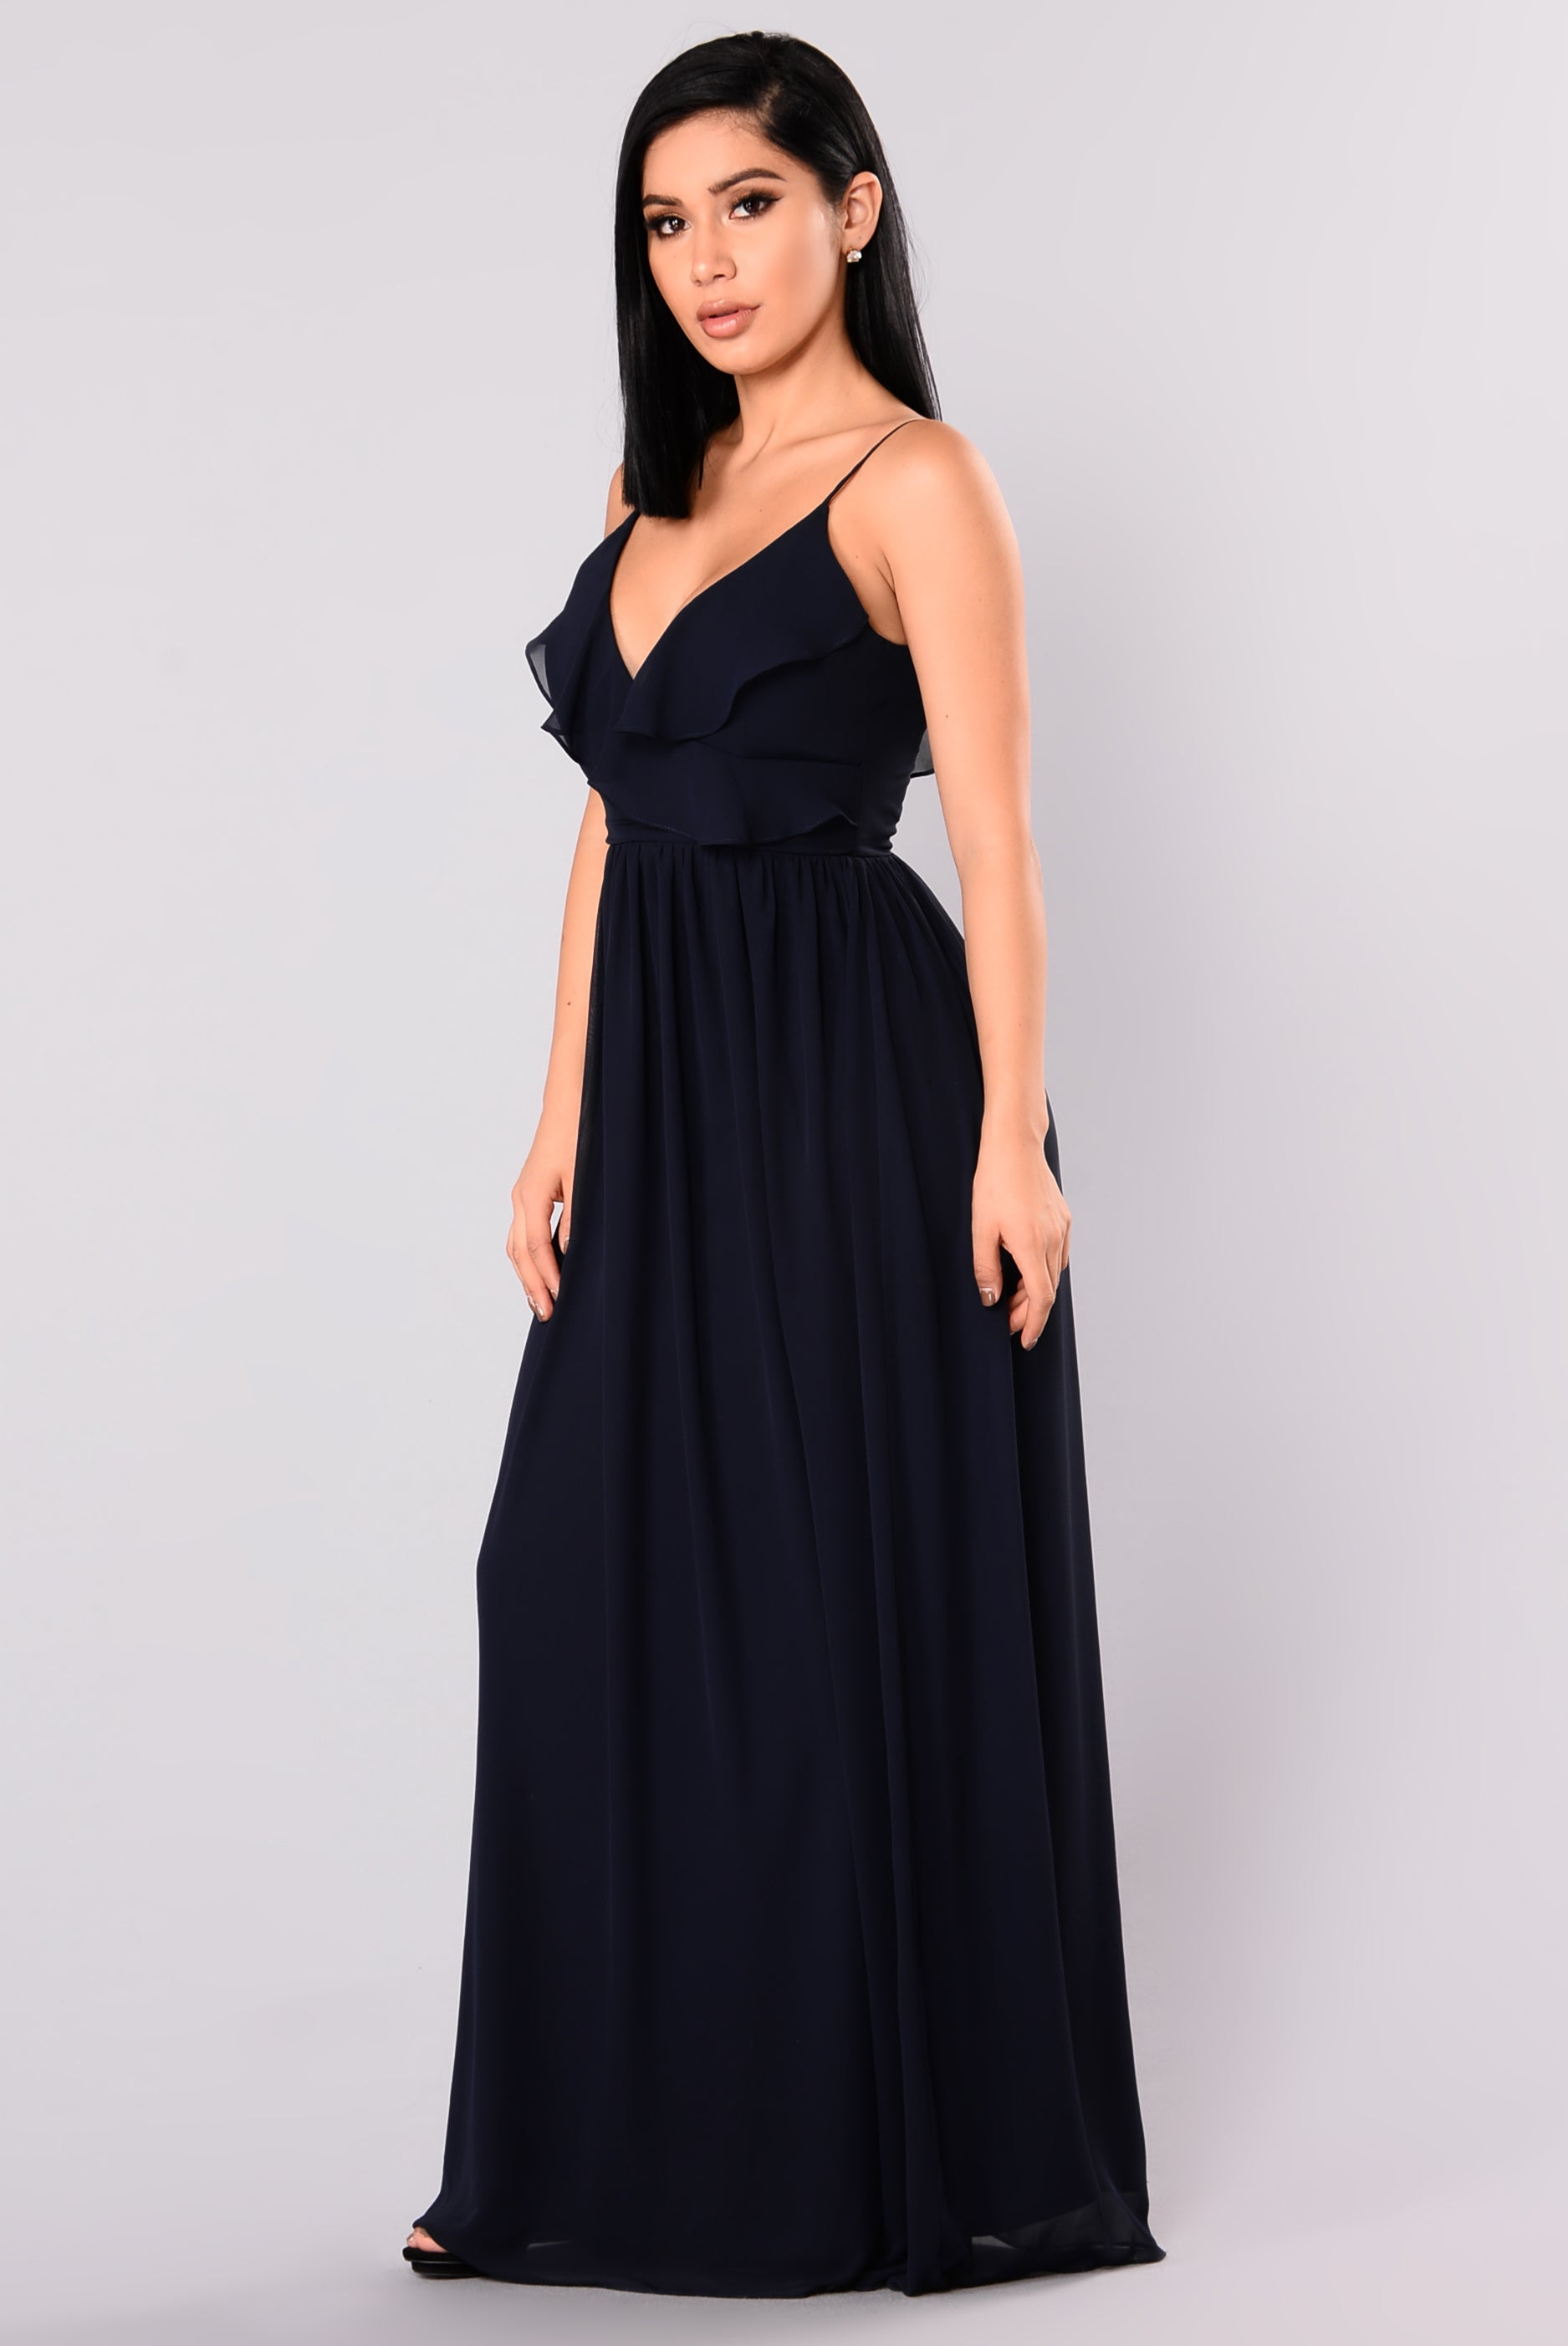 Maxi dress for under 5ft